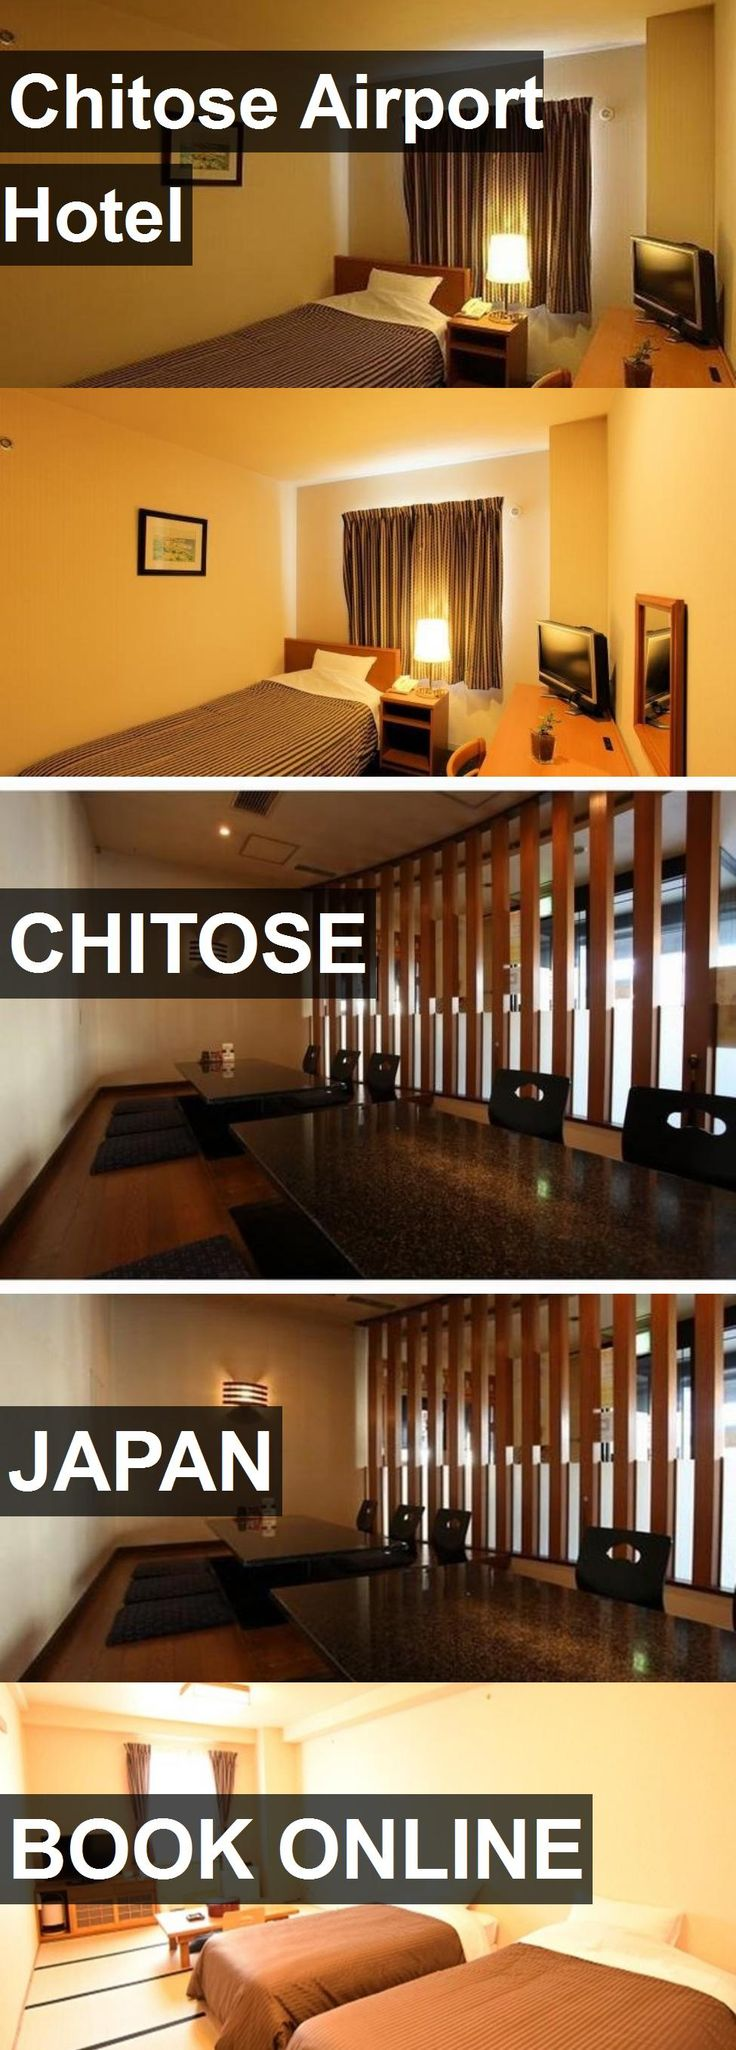 Chitose Airport Hotel in Chitose, Japan. For more information, photos, reviews and best prices please follow the link. #Japan #Chitose #travel #vacation #hotel